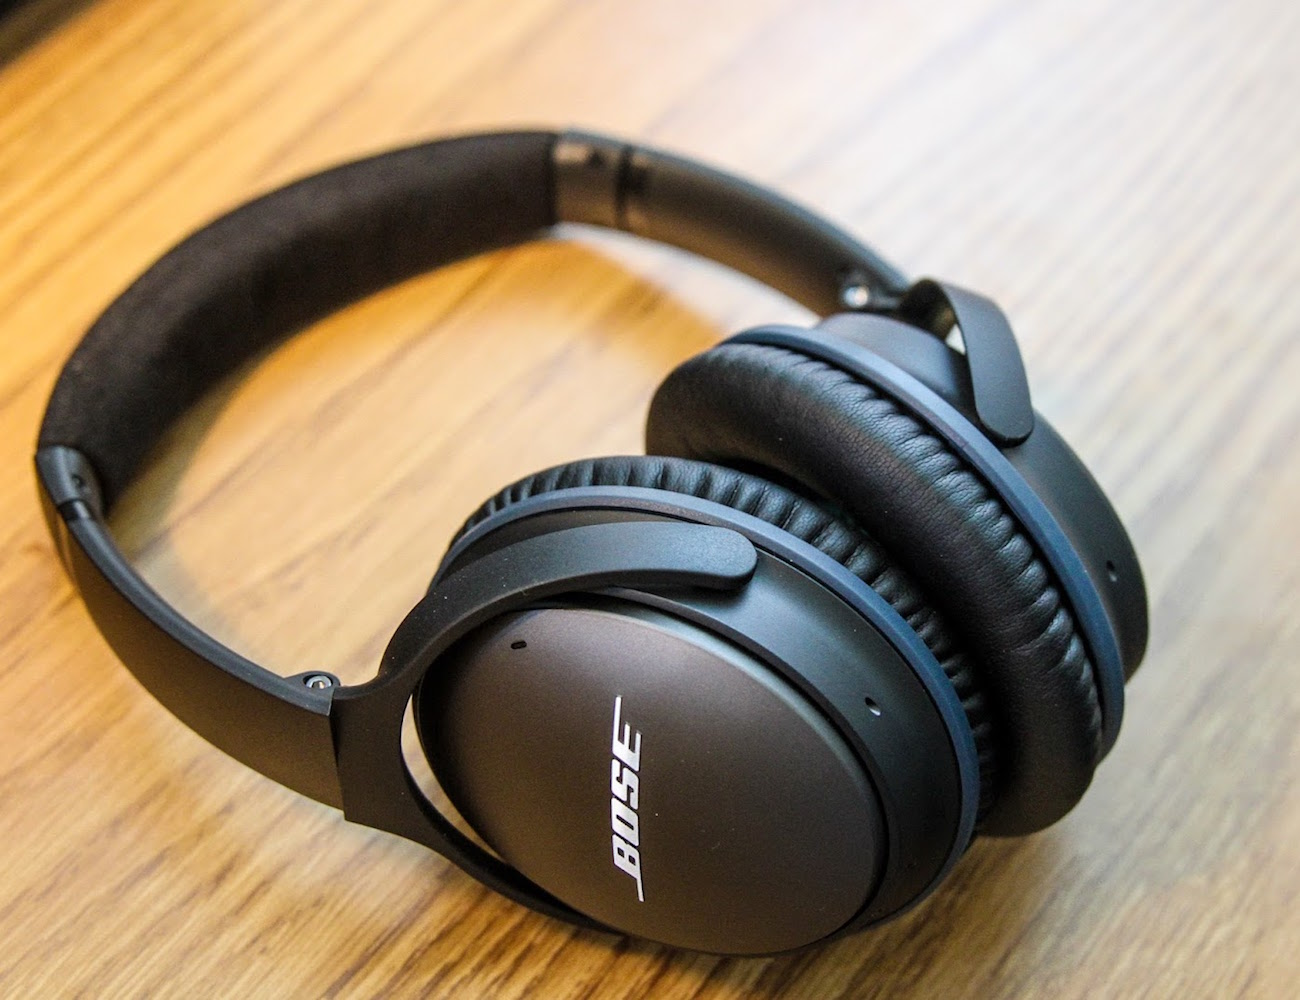 Bose Noise Cancelling Quietcomfort 25 Noise Cancelling Headphones From Bose